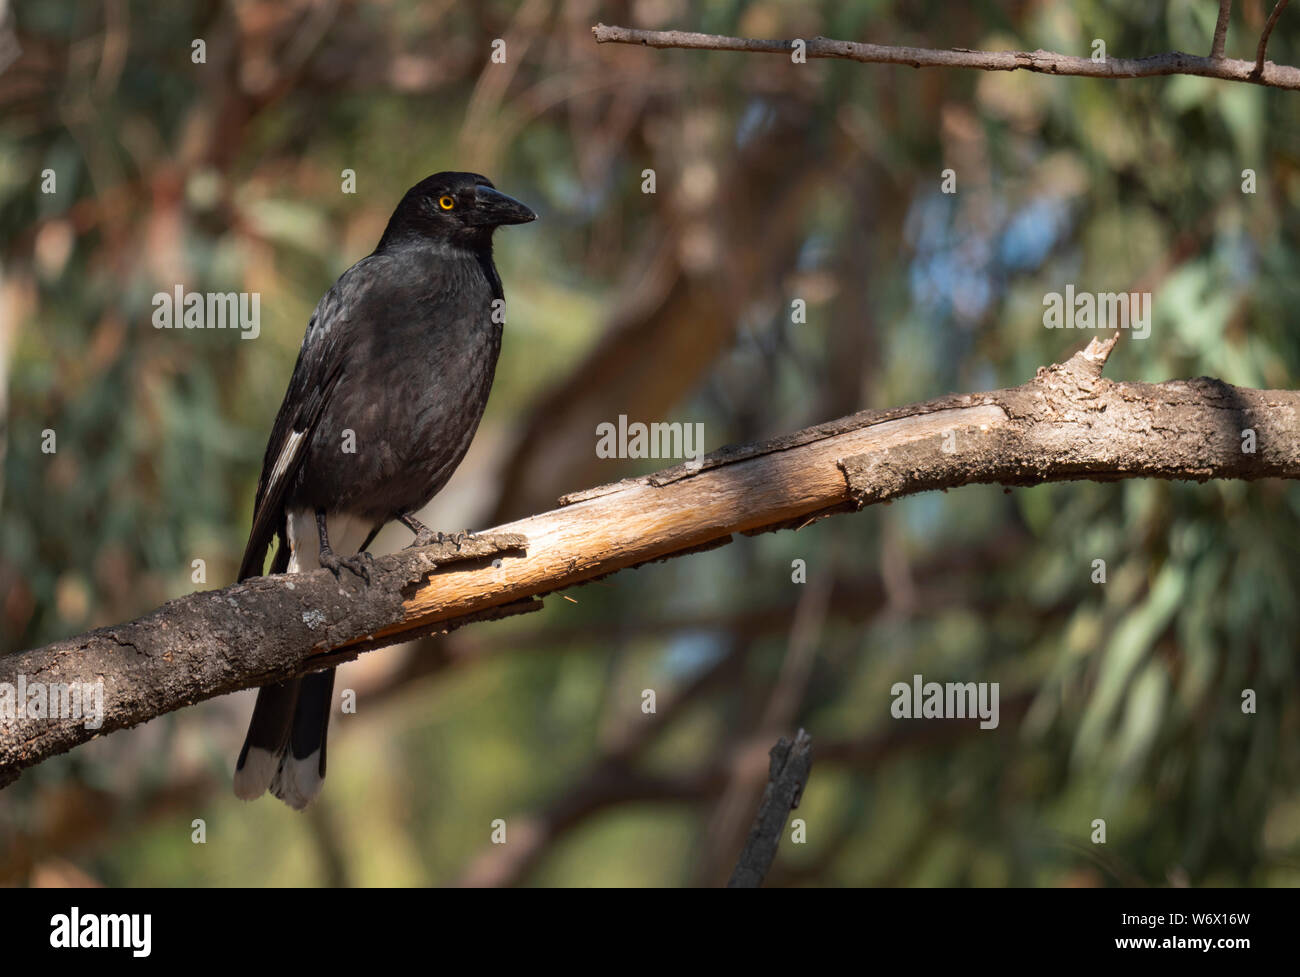 A Pied Currawong, , perched in a tree near Dubbo, Central Western New South Wales, Australia Stock Photo